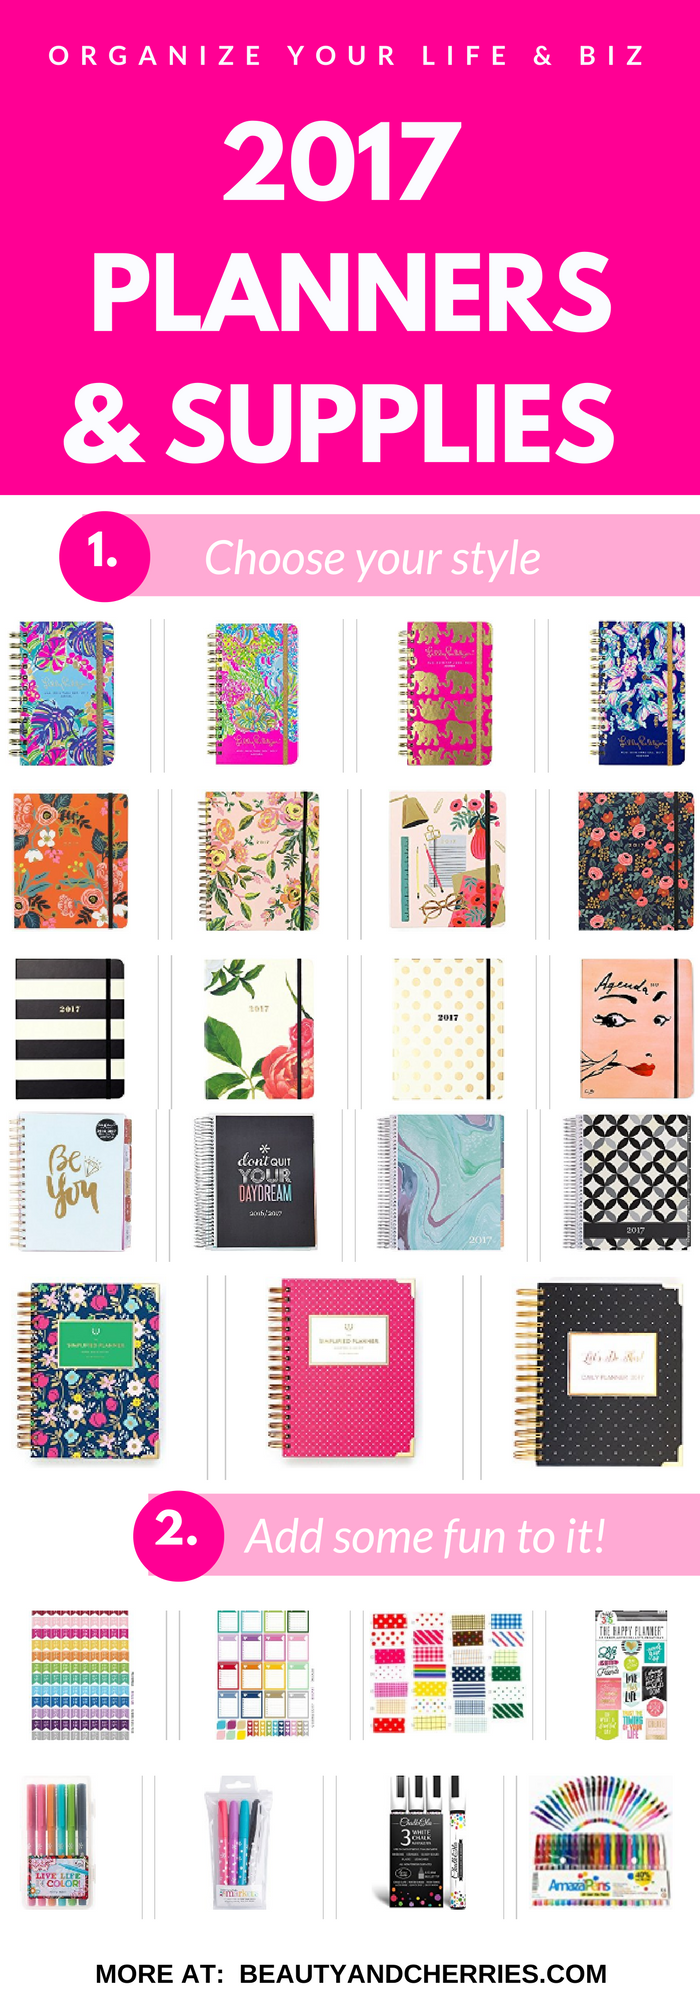 2017 planners and supplies to organize your life